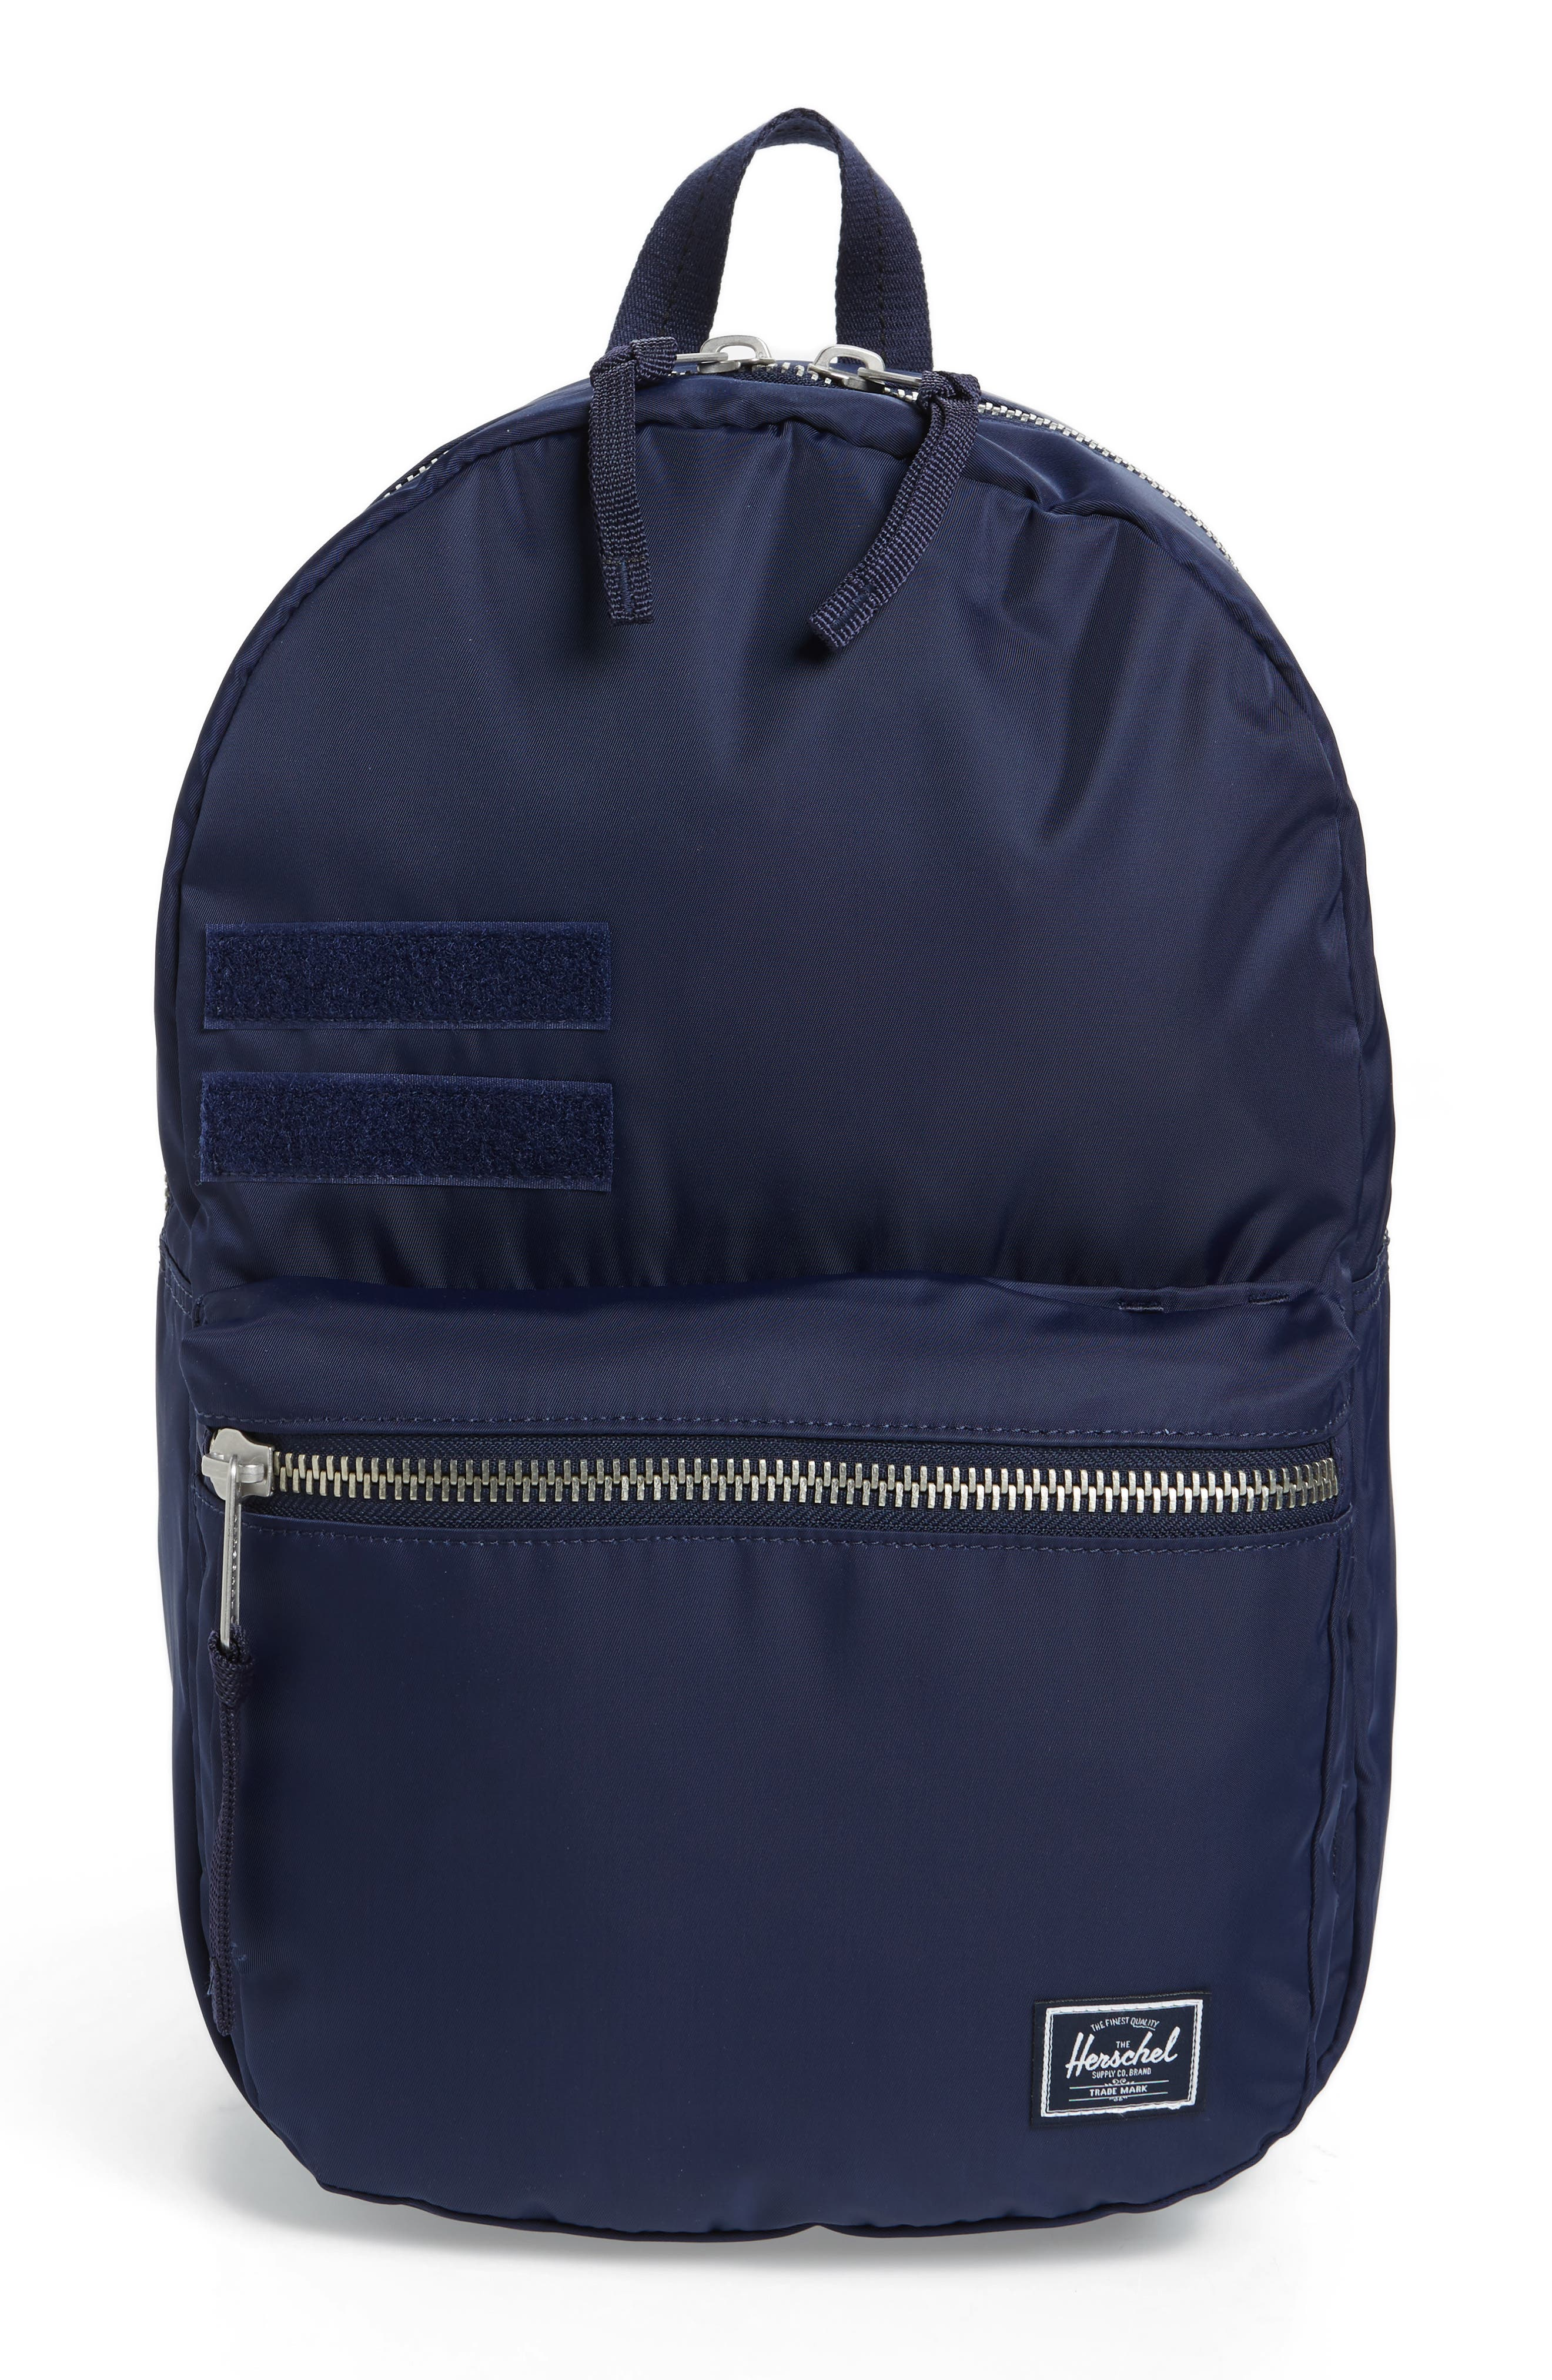 Lawson Surplus Collection Backpack,                             Main thumbnail 1, color,                             477